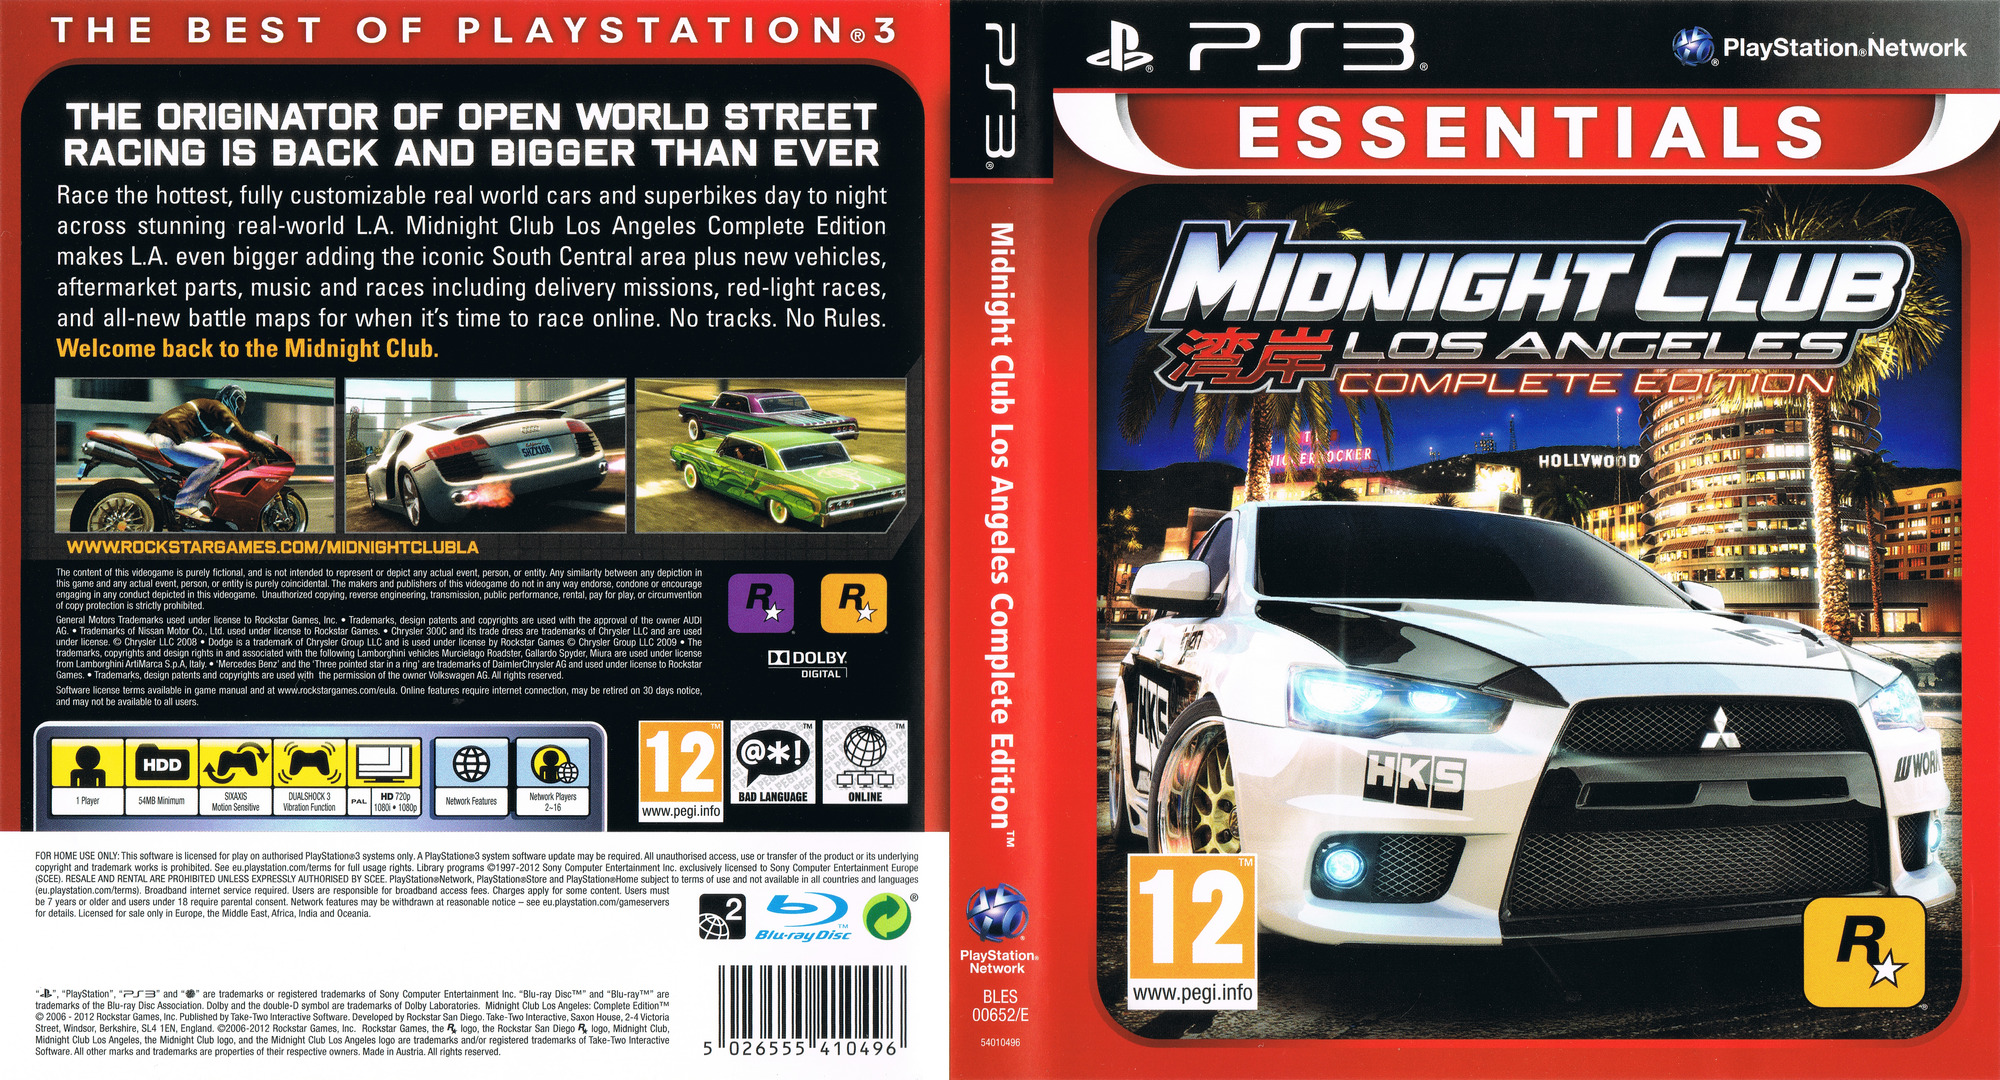 Midnight Club: Los Angeles - Complete Edition PS3 coverfullHQ (BLES00652)